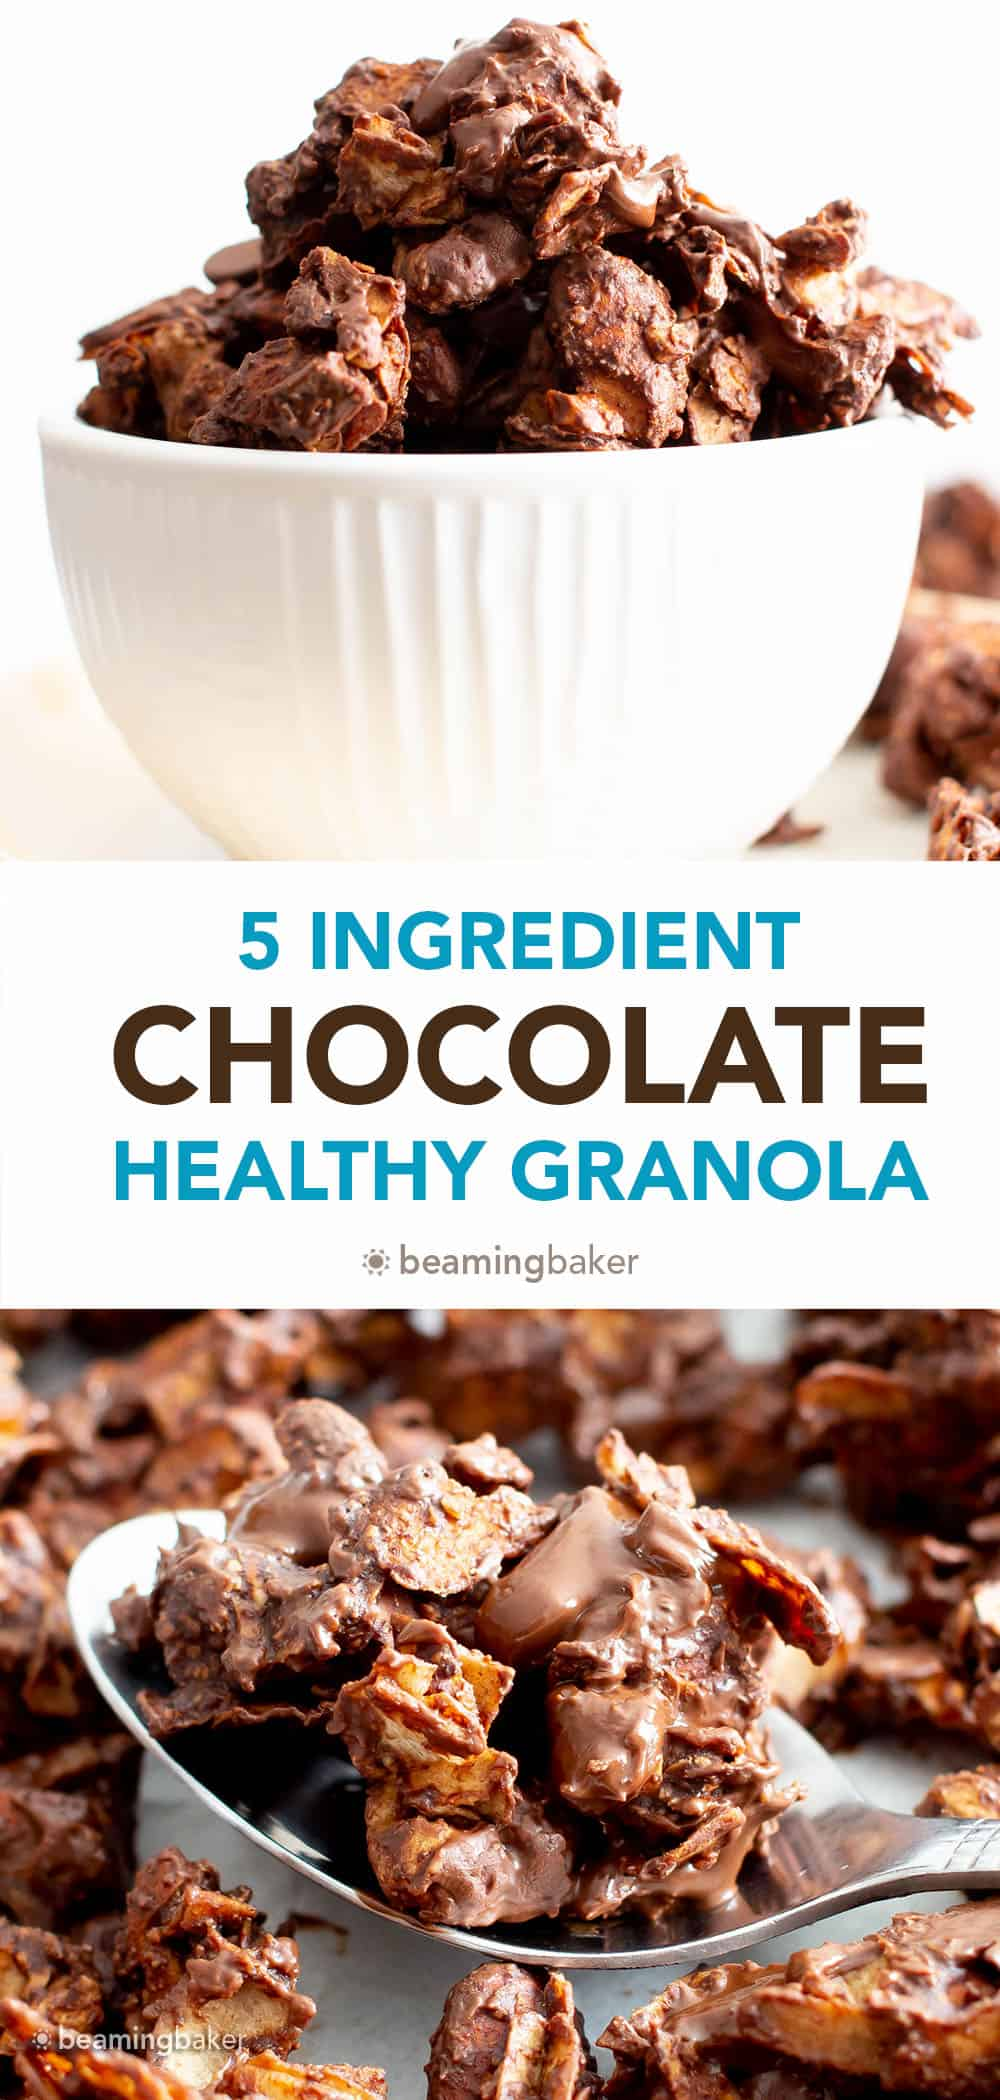 Healthy Chocolate Granola: the tastiest healthy chocolate granola recipe—big, chunky granola clusters covered in rich chocolate goodness. Healthy, whole ingredients. #Chocolate #Granola #Healthy #GranolaRecipe | Recipe at BeamingBaker.com